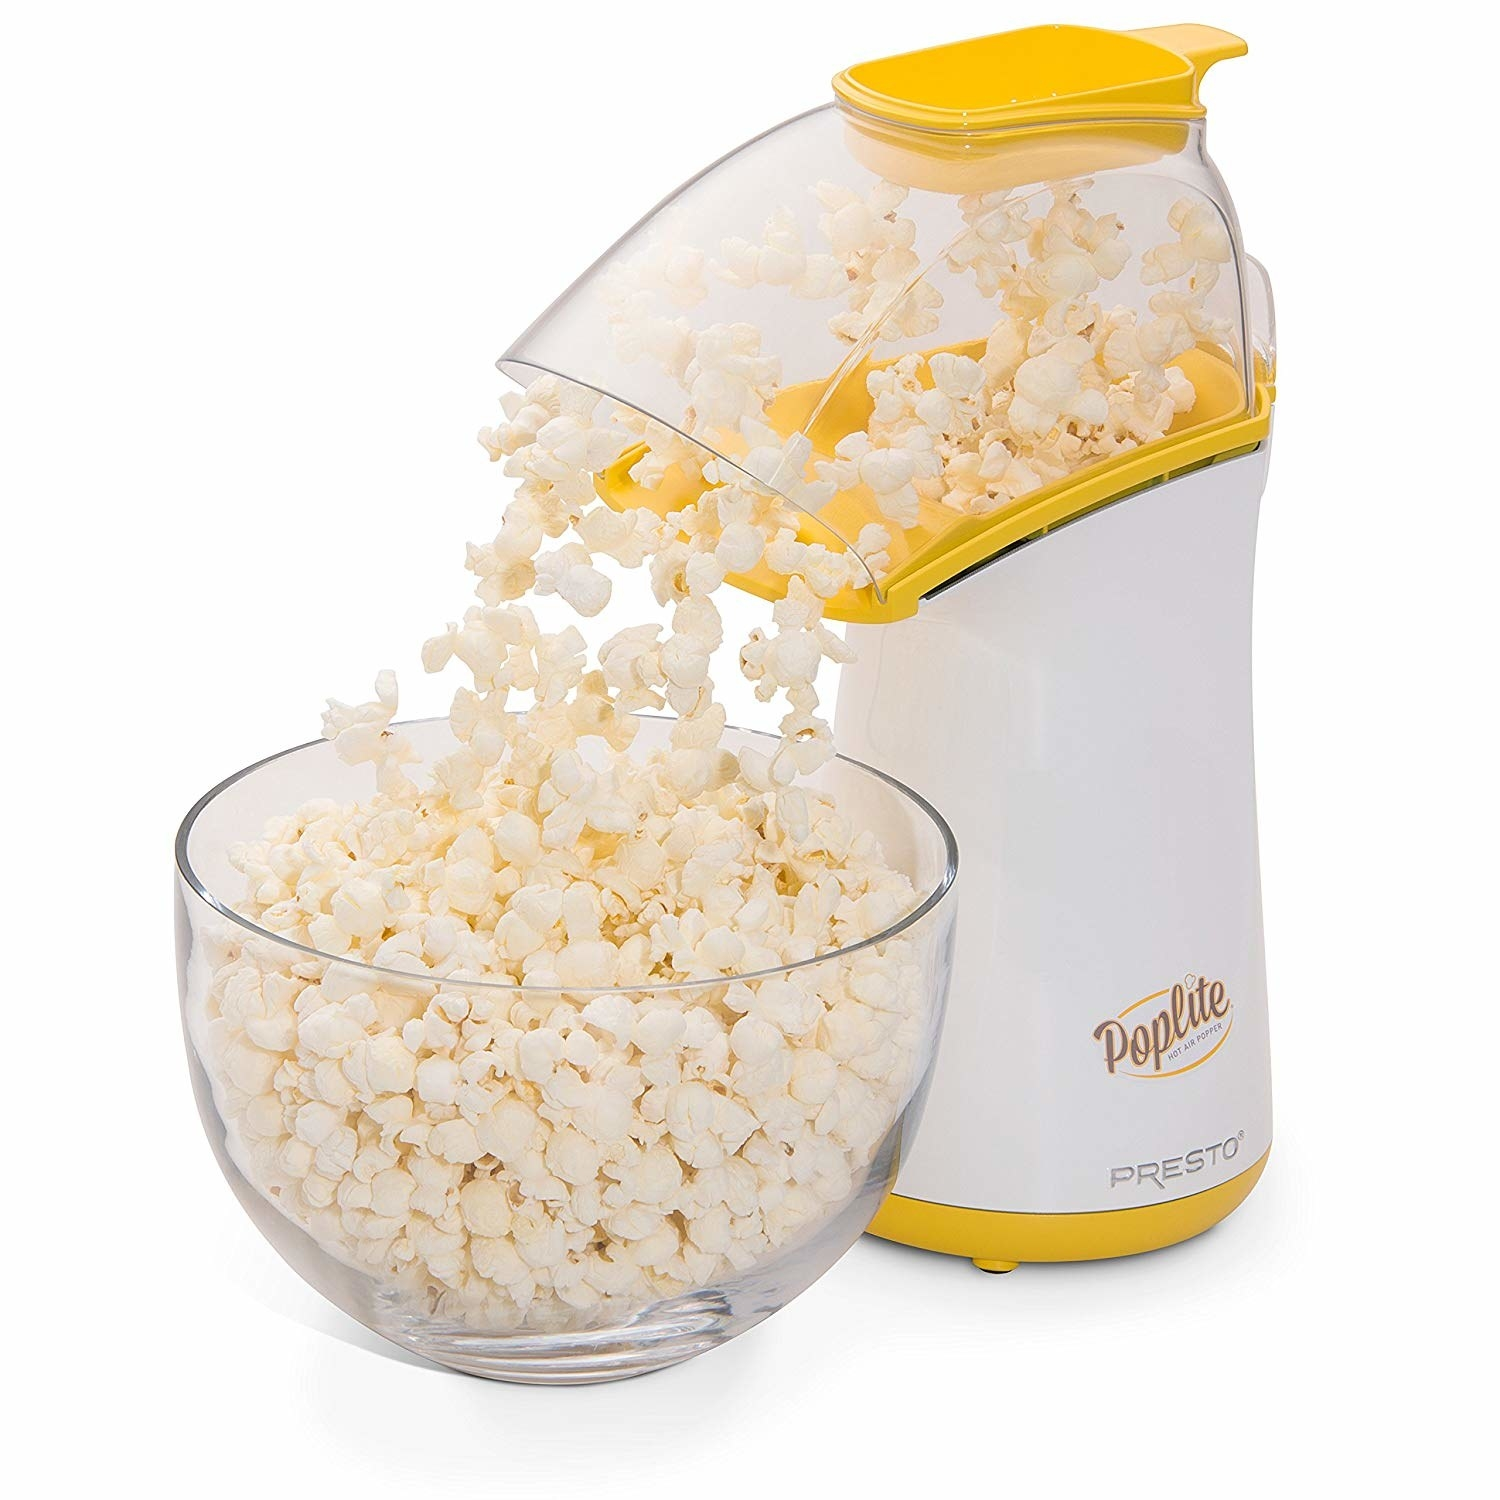 "It can pop 18 cups of popcorn in two and a half minutes, doesn't leave kernels unpopped, and you can add whatever toppings you want!Get it from Walmart for $18.78 (originally $29.99).Promising review: ""I LOVE this air popper! I was spending at least $6.00-$8.00 a week buying organic popcorn from our local grocer and there were always a ton of unpopped kernels on the bottom of the bag. This air popper pops 98% of the kernels and does a great job! The kids love watching it pop and it takes only three minutes. Just don't use a shallow bowl when popping, as those last kernels can really fly out of there easily."" —SoCalrunnergirl"